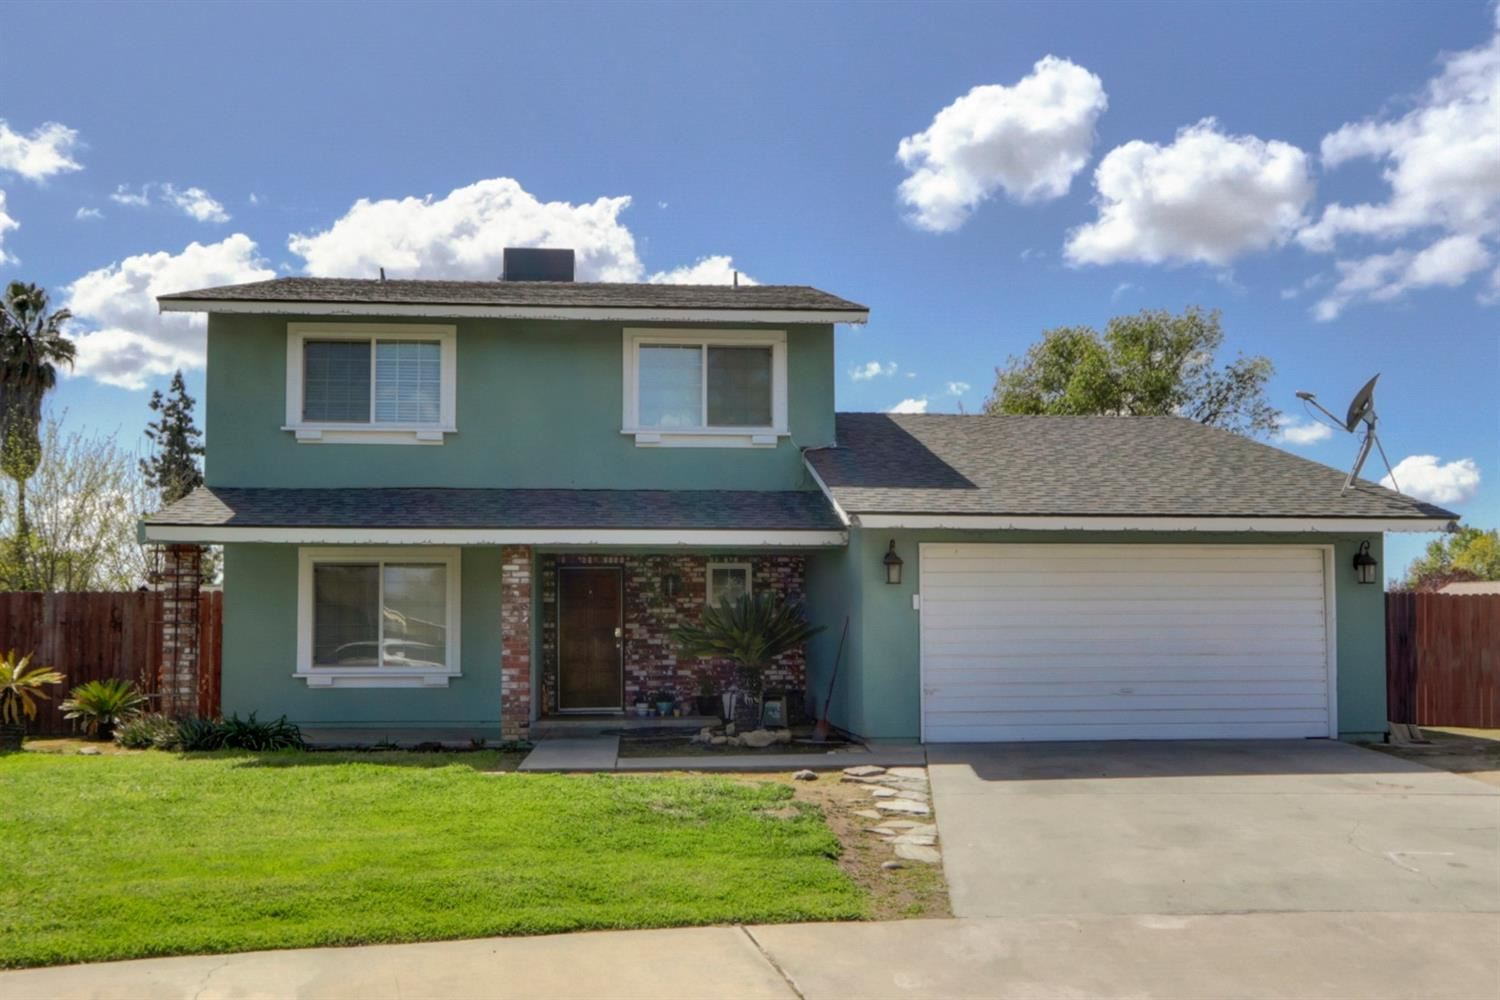 Photo of 1424 Betsy, Exeter, CA 93221 (MLS # 221030625)